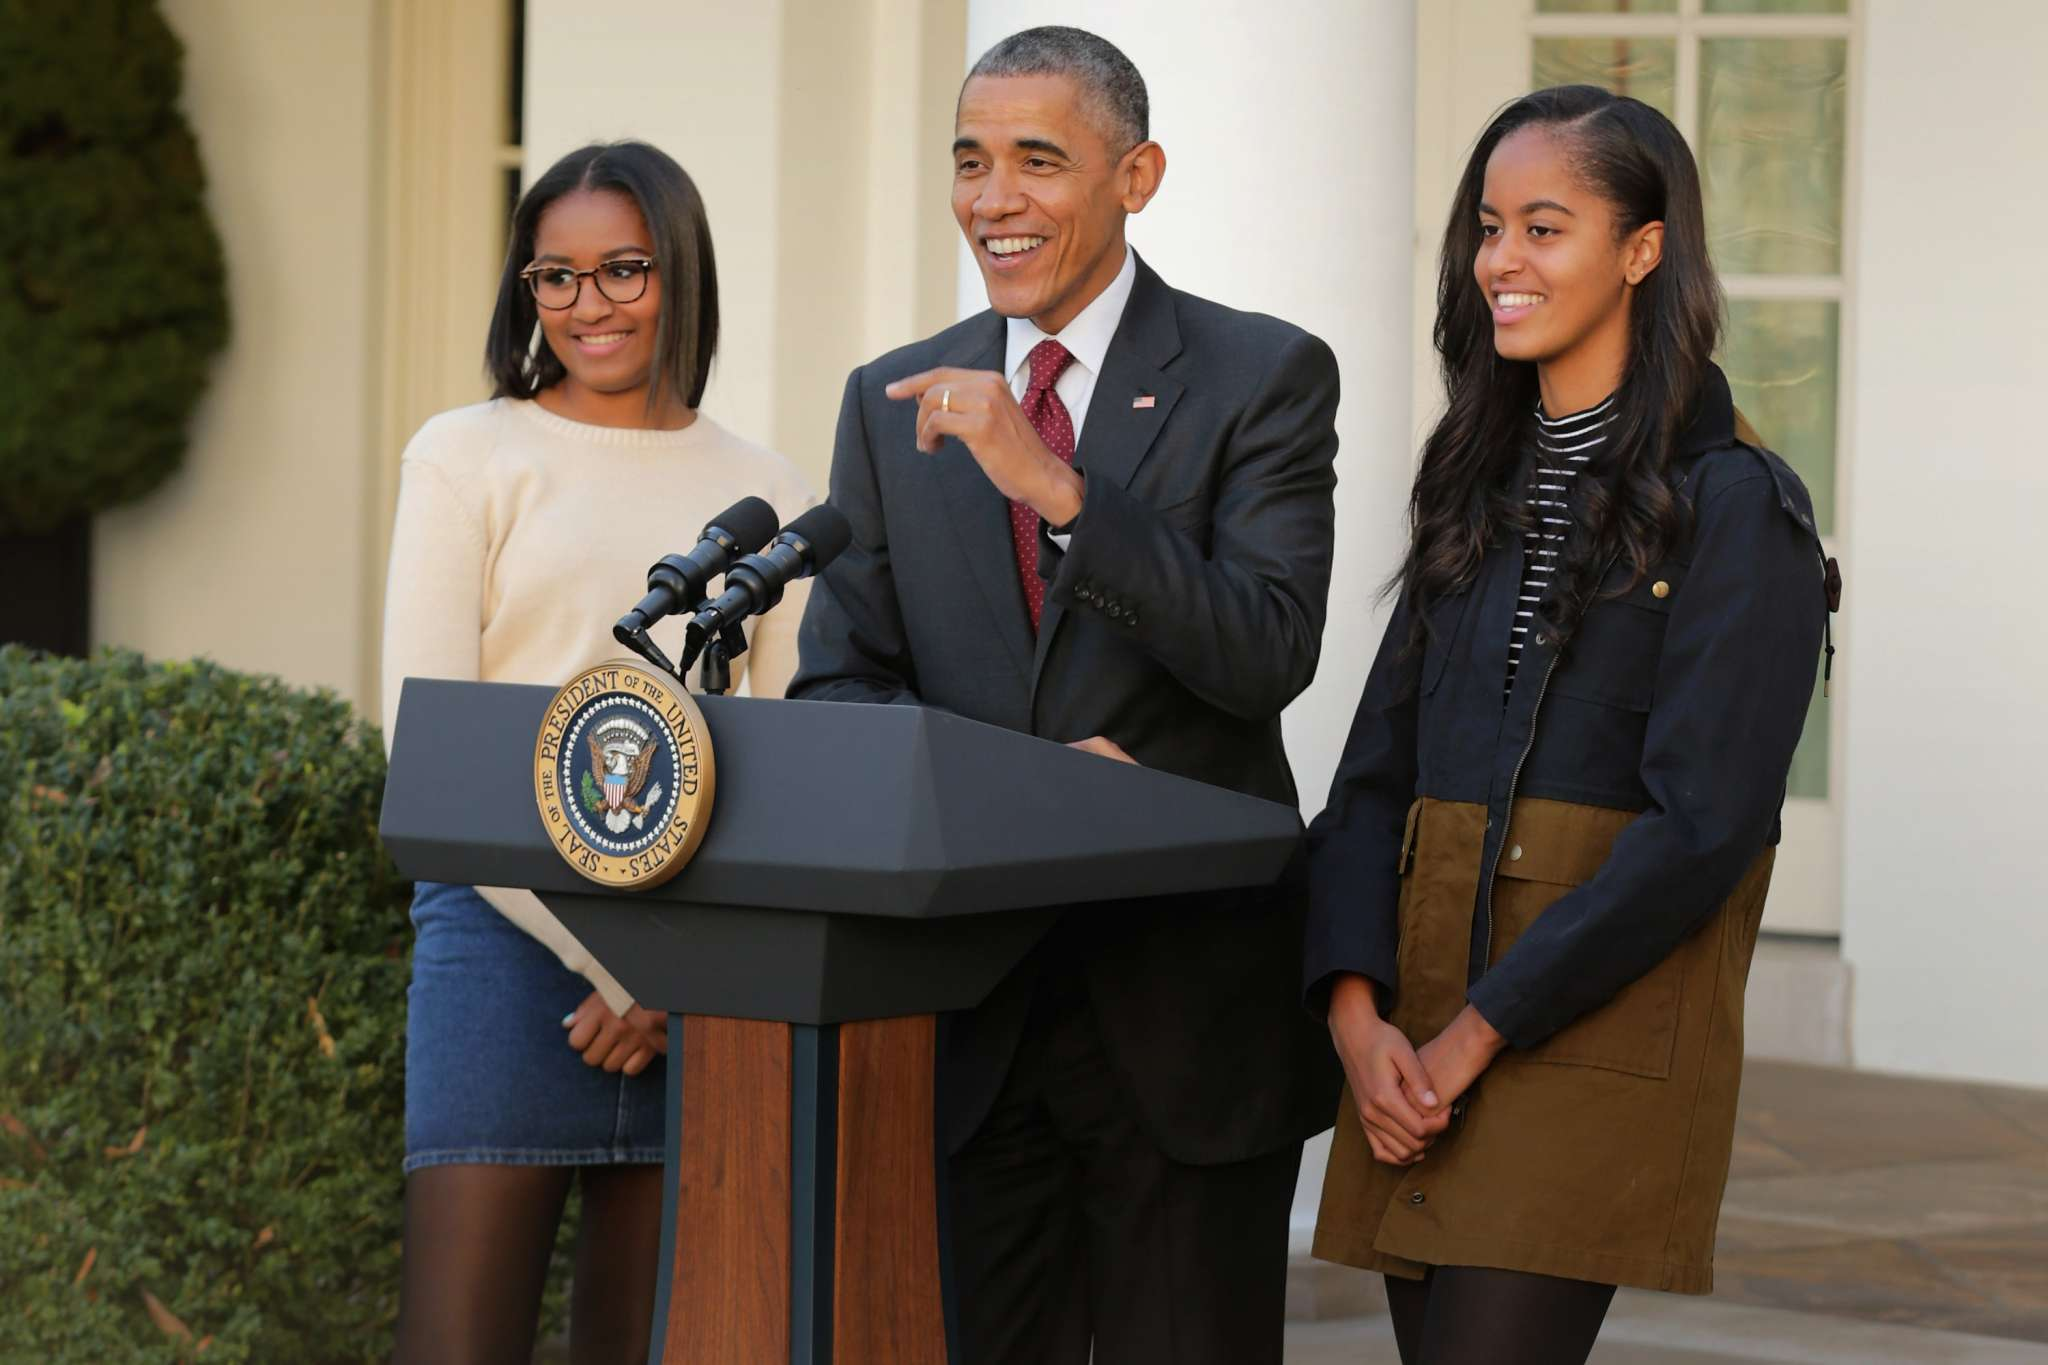 barack-obama-says-his-daughters-generation-can-go-too-far-with-cancel-culture-and-malia-and-sasha-agree